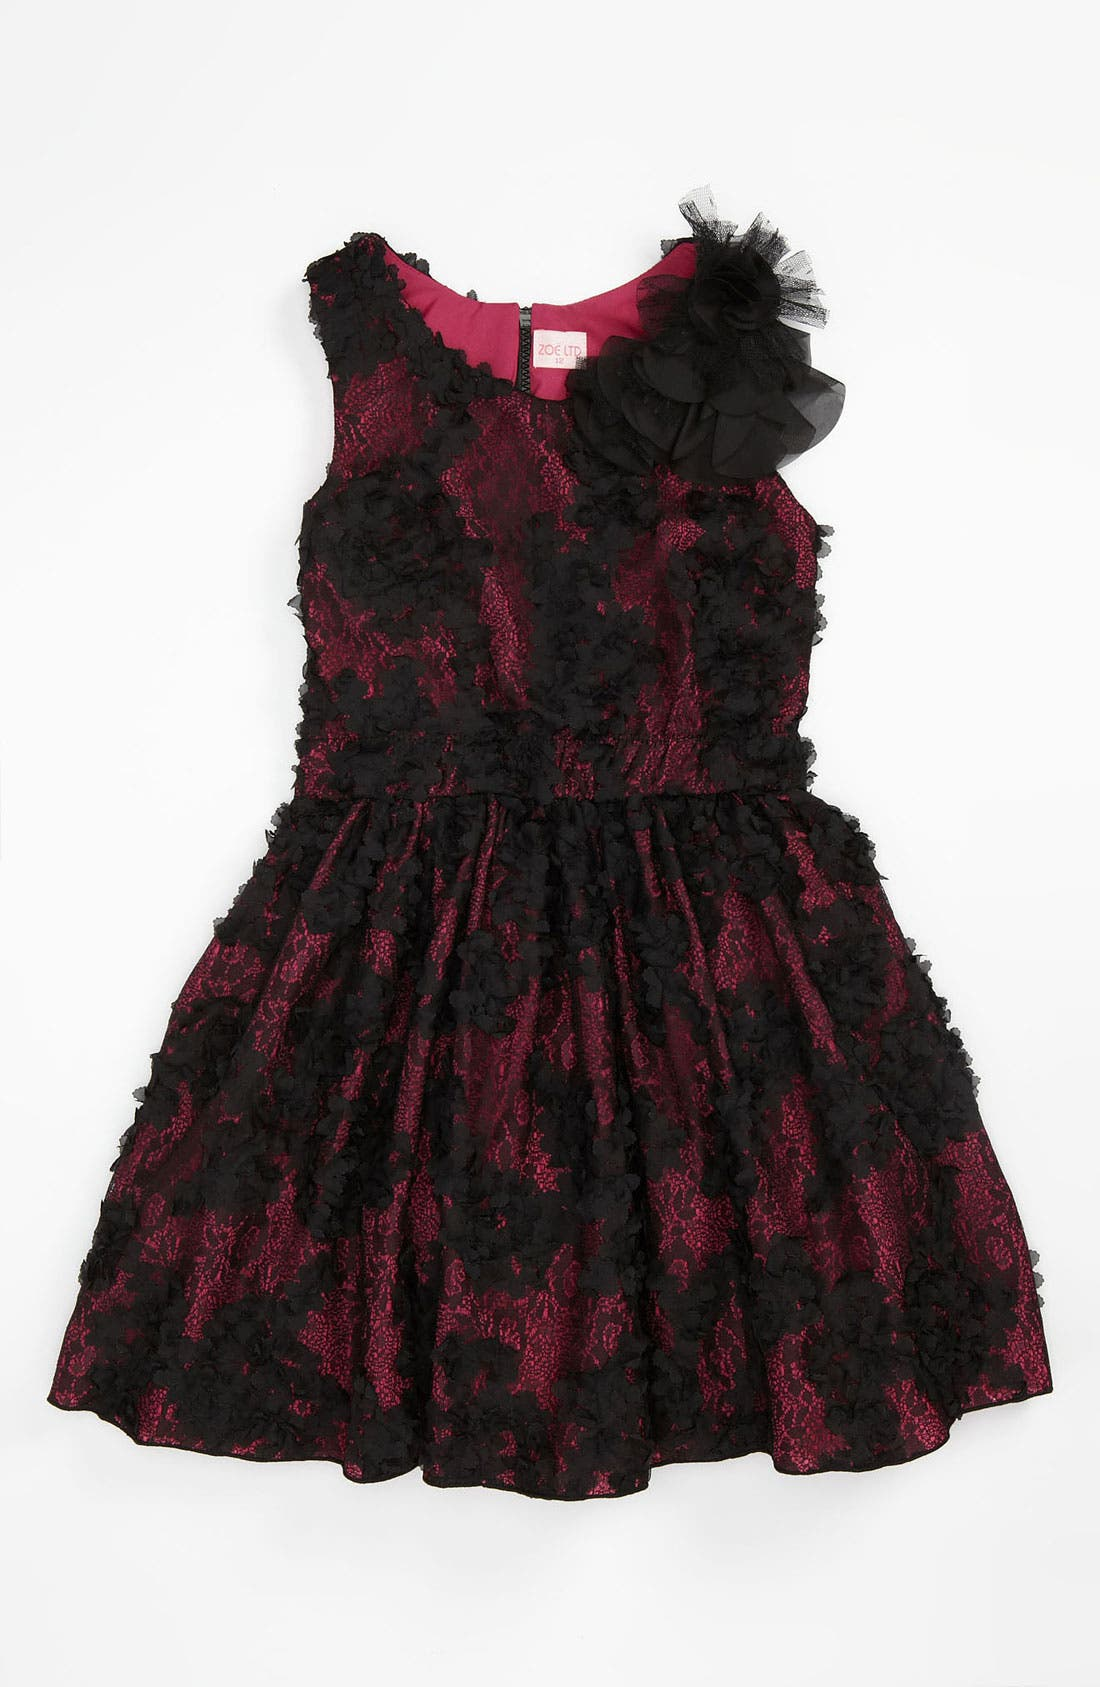 Alternate Image 1 Selected - Zoe Ltd Floral Mesh Dress (Big Girls)